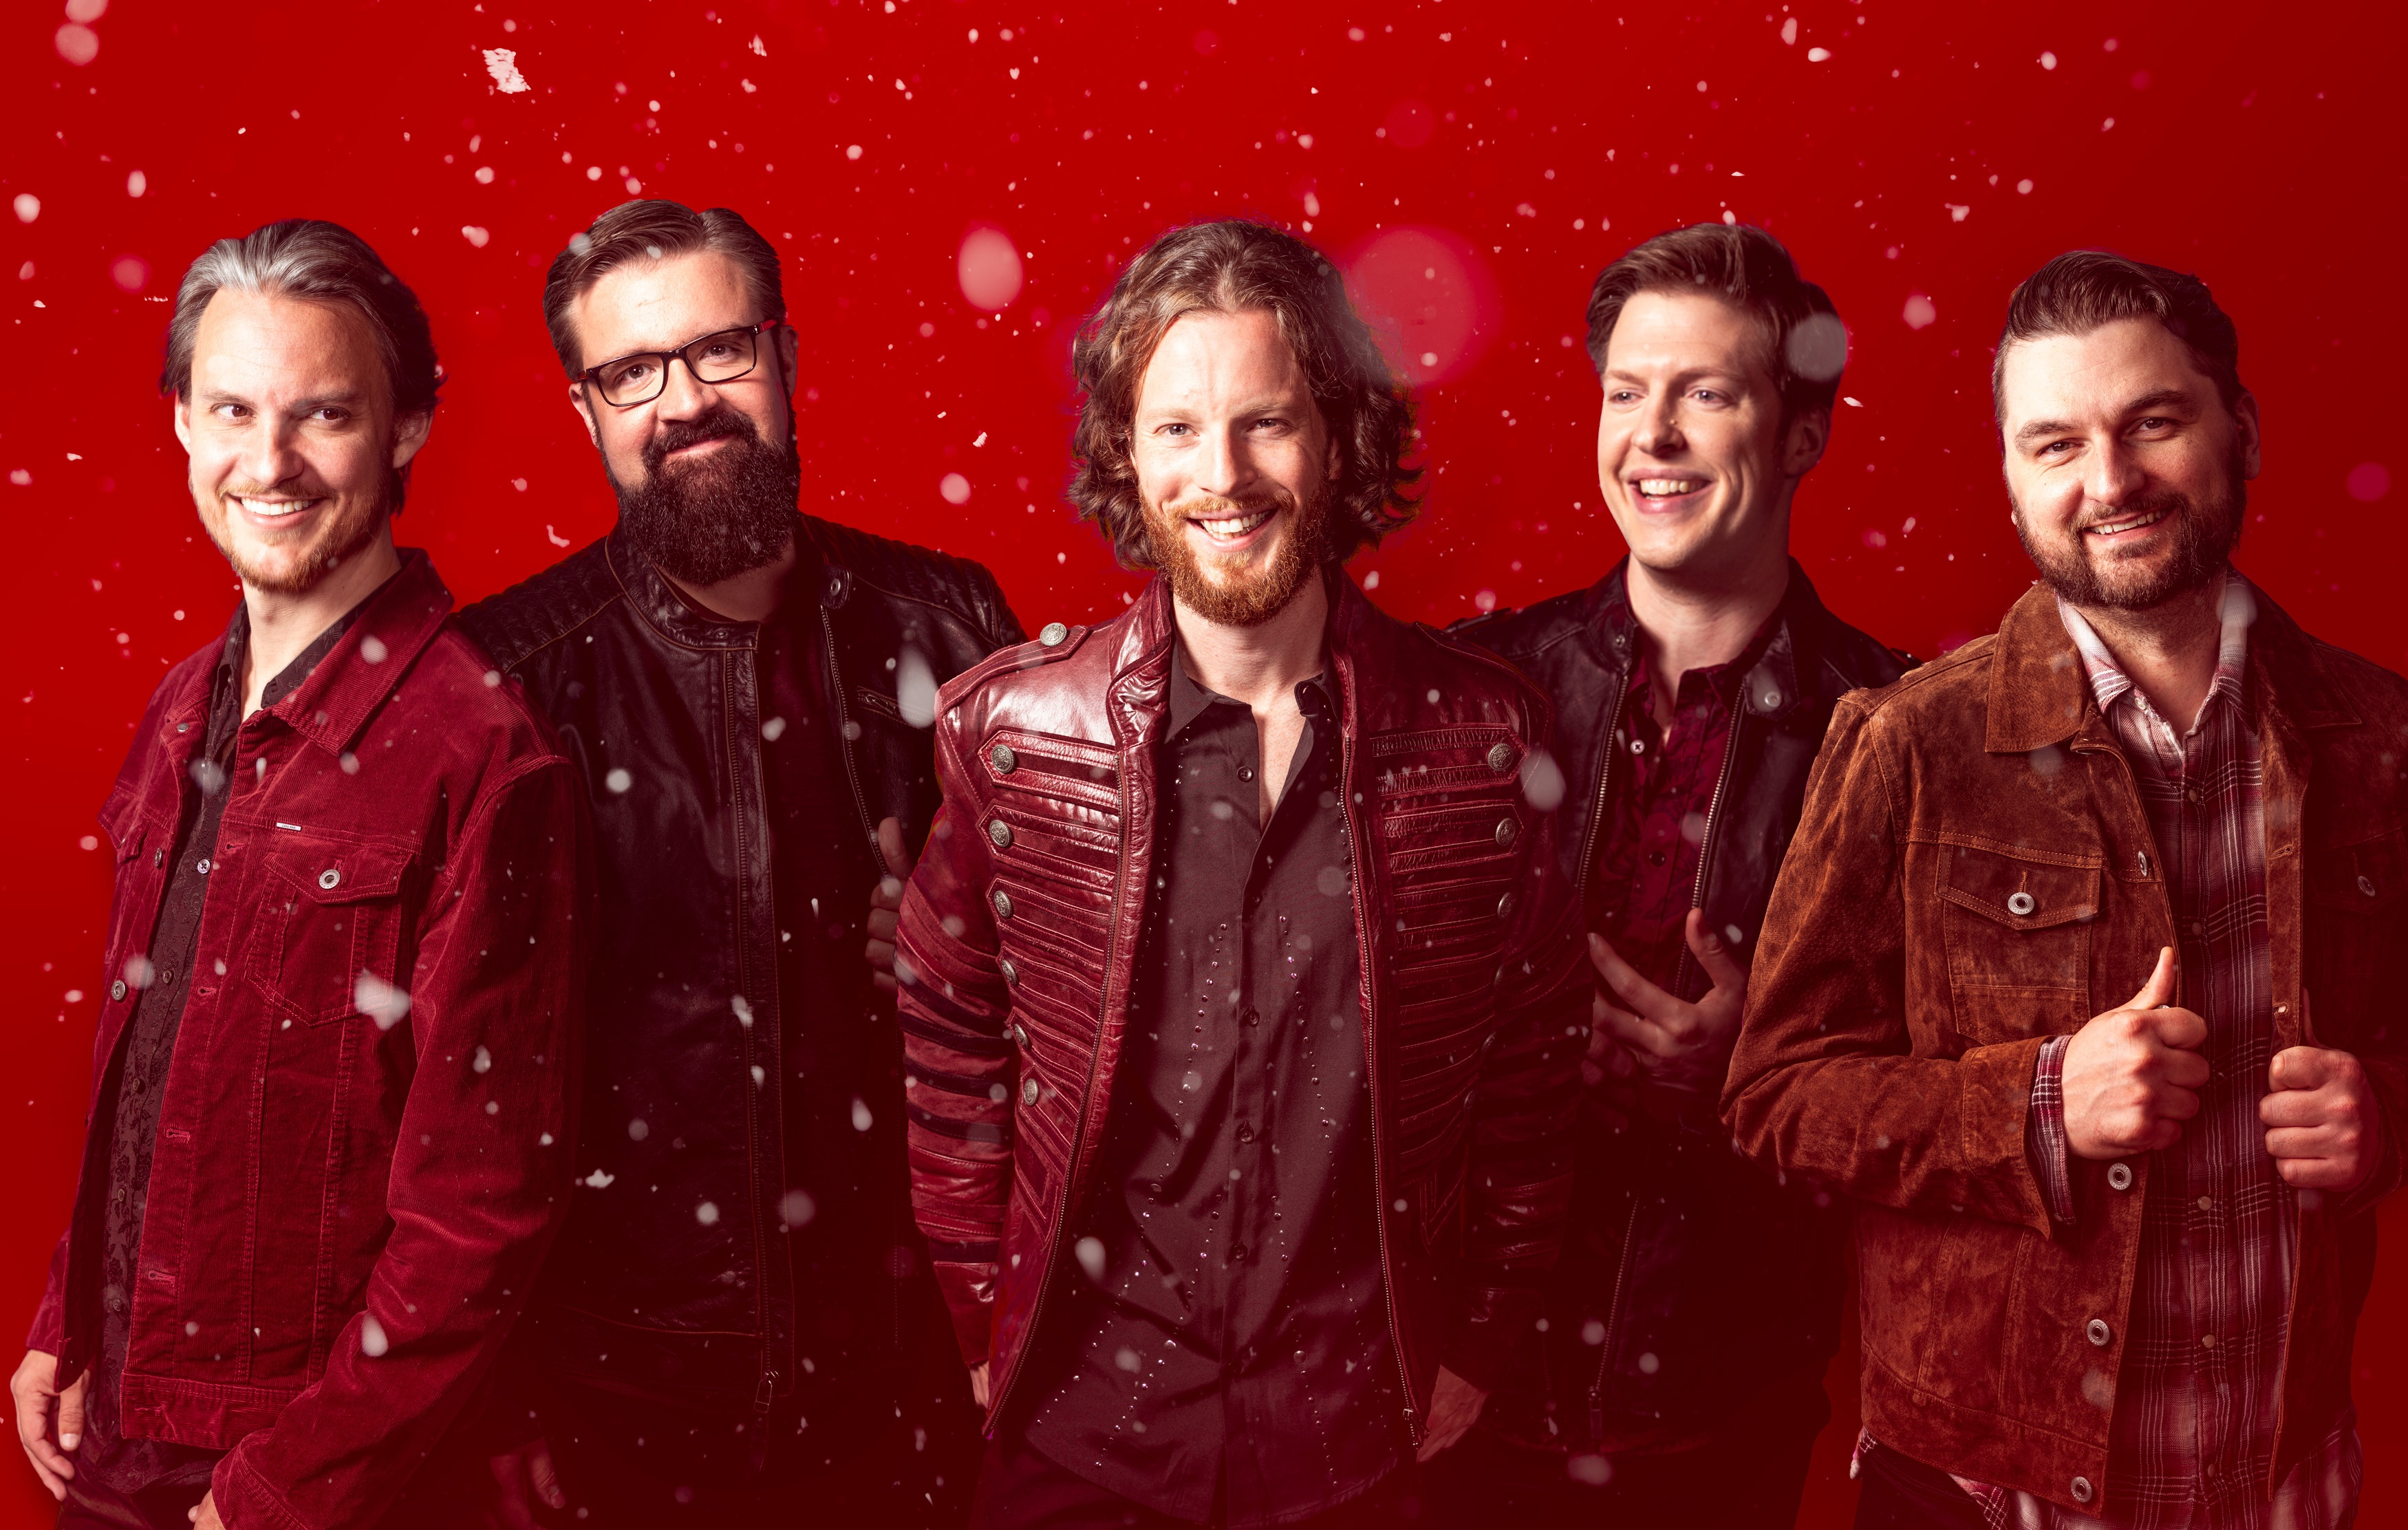 Home Free - Warmest Winter